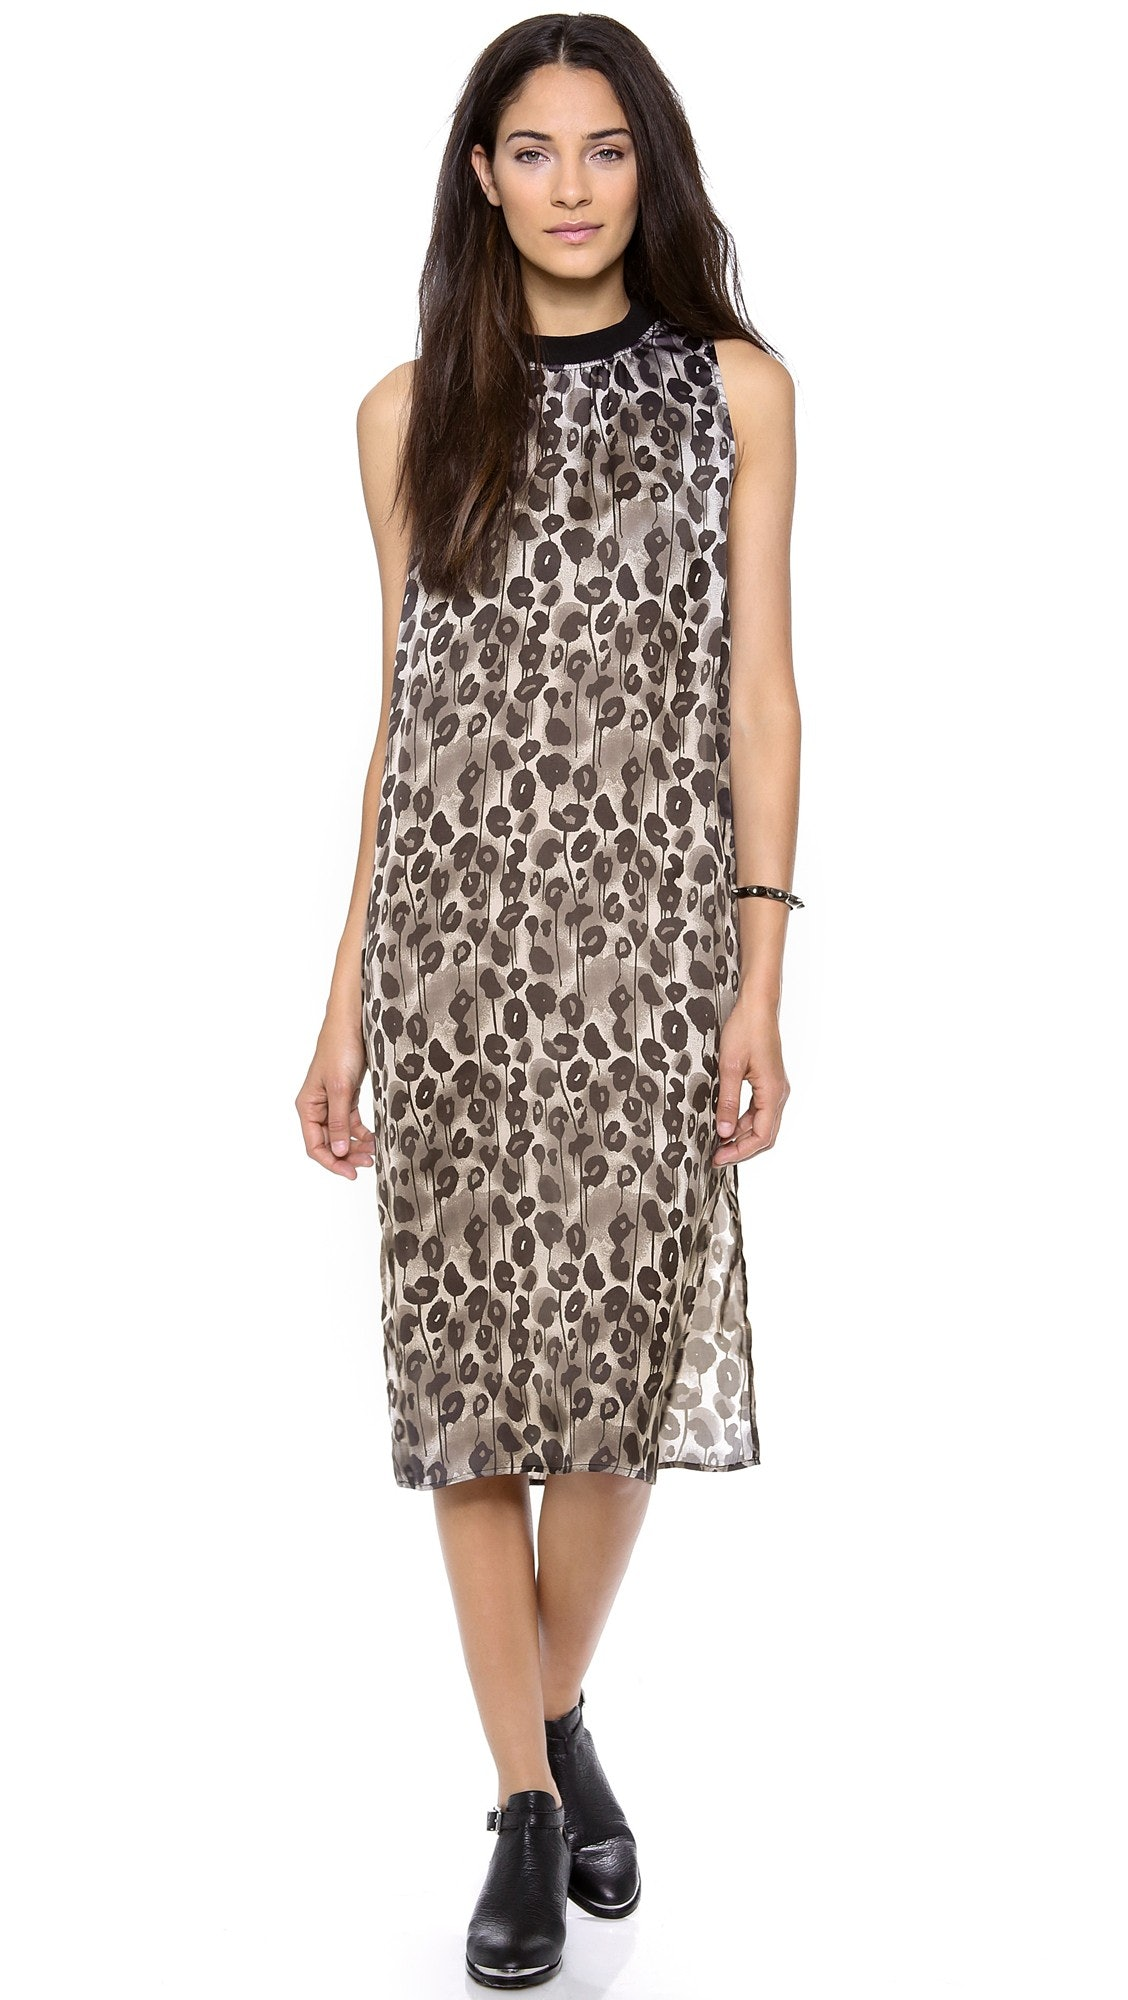 This dress has side slits that up the sexiness on an already seductive  animal print dress. Its ease of movement makes it both comfortable and  versatile.